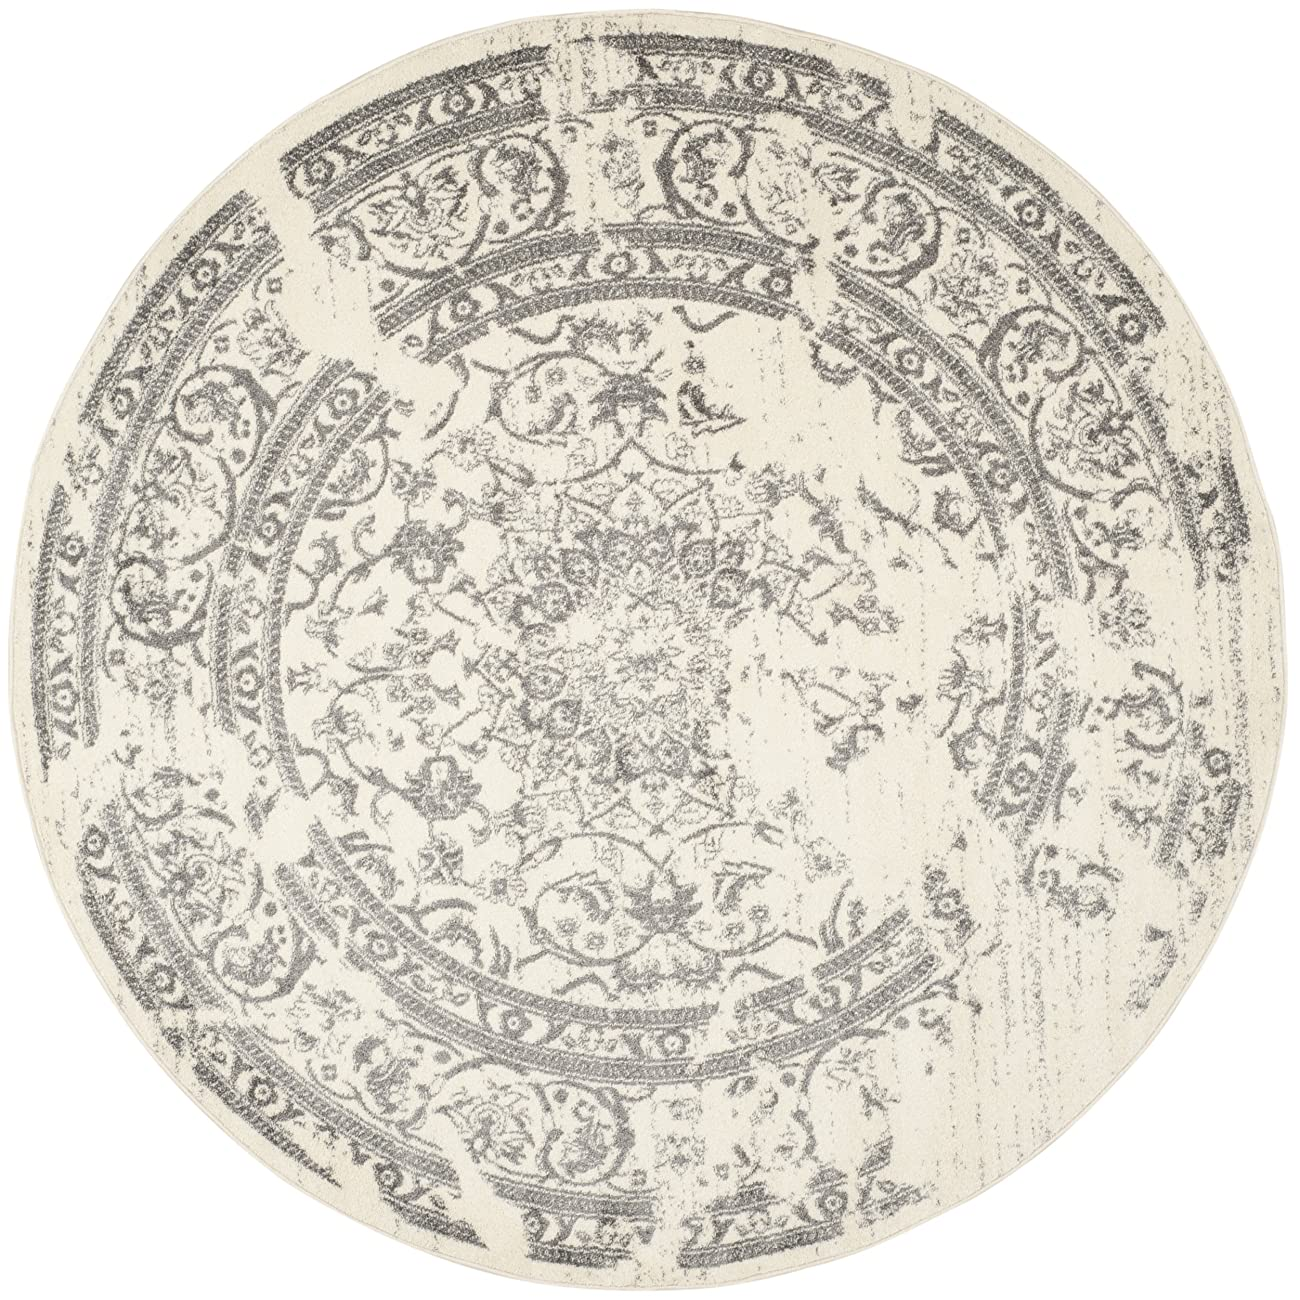 Safavieh Adirondack Collection ADR101B Ivory and Silver Oriental Vintage Round Area Rug (8' Diameter) 1